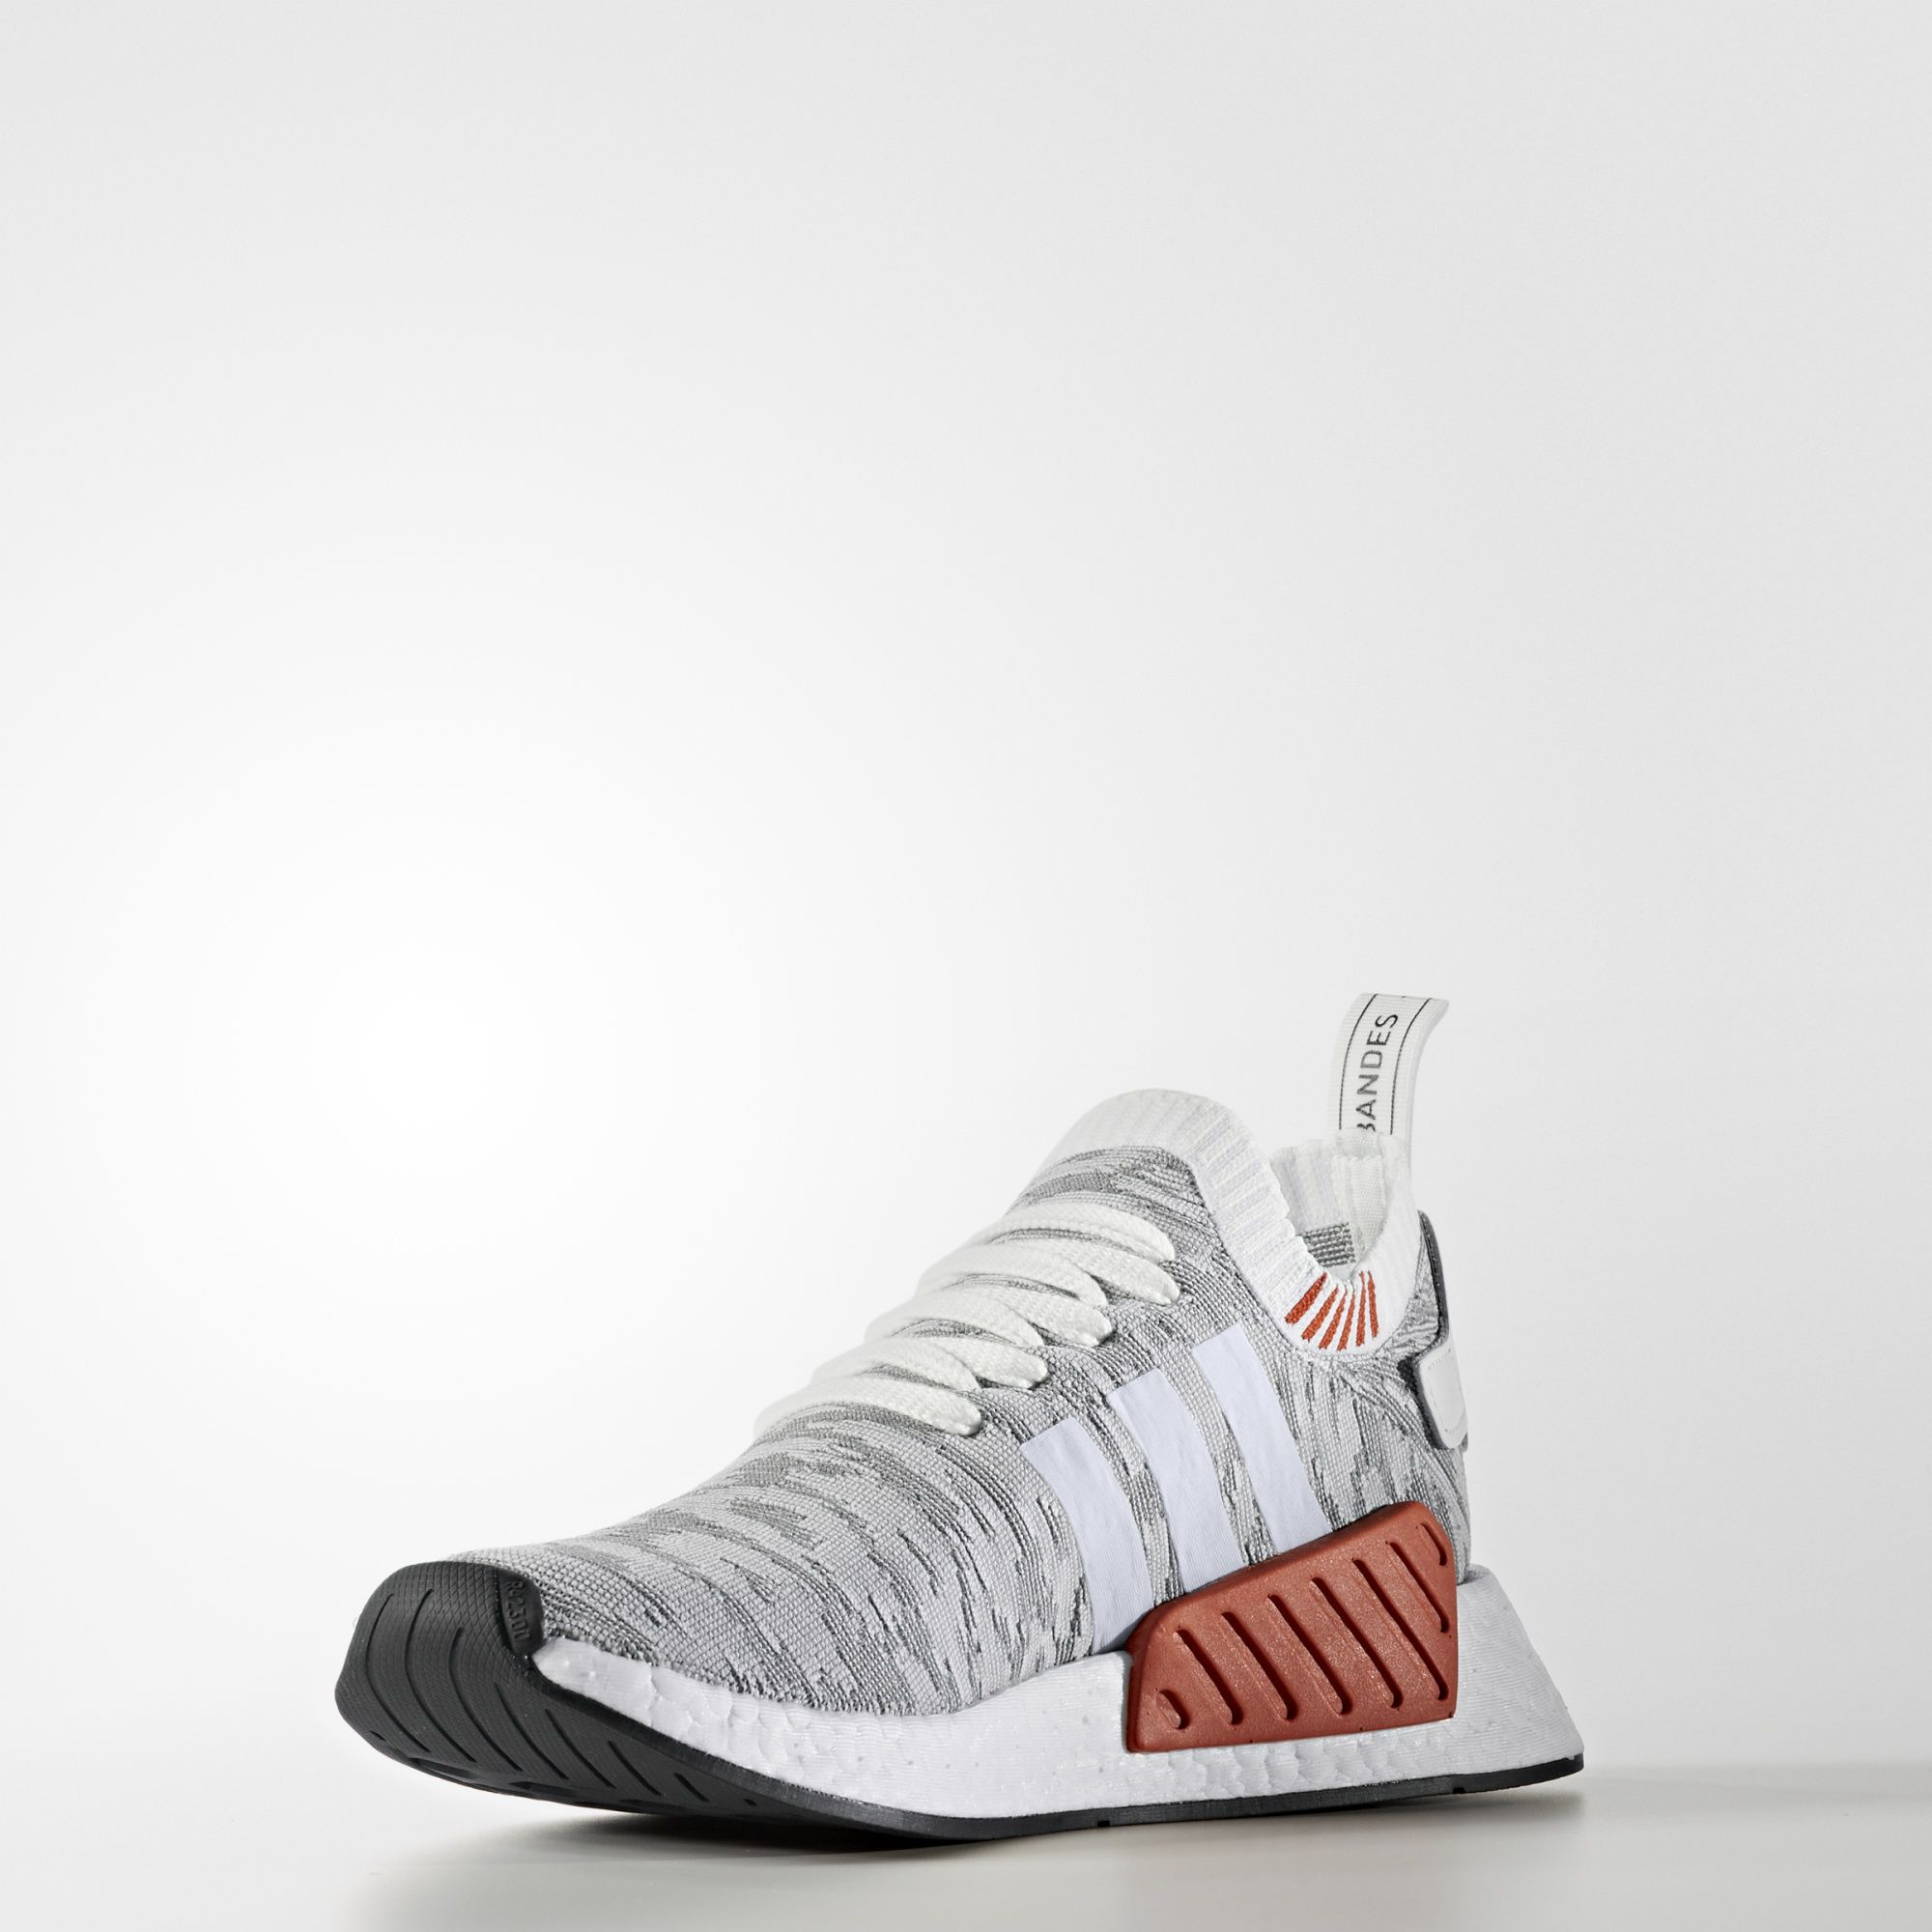 adidas NMD R2 Primeknit White Black BY9410 3